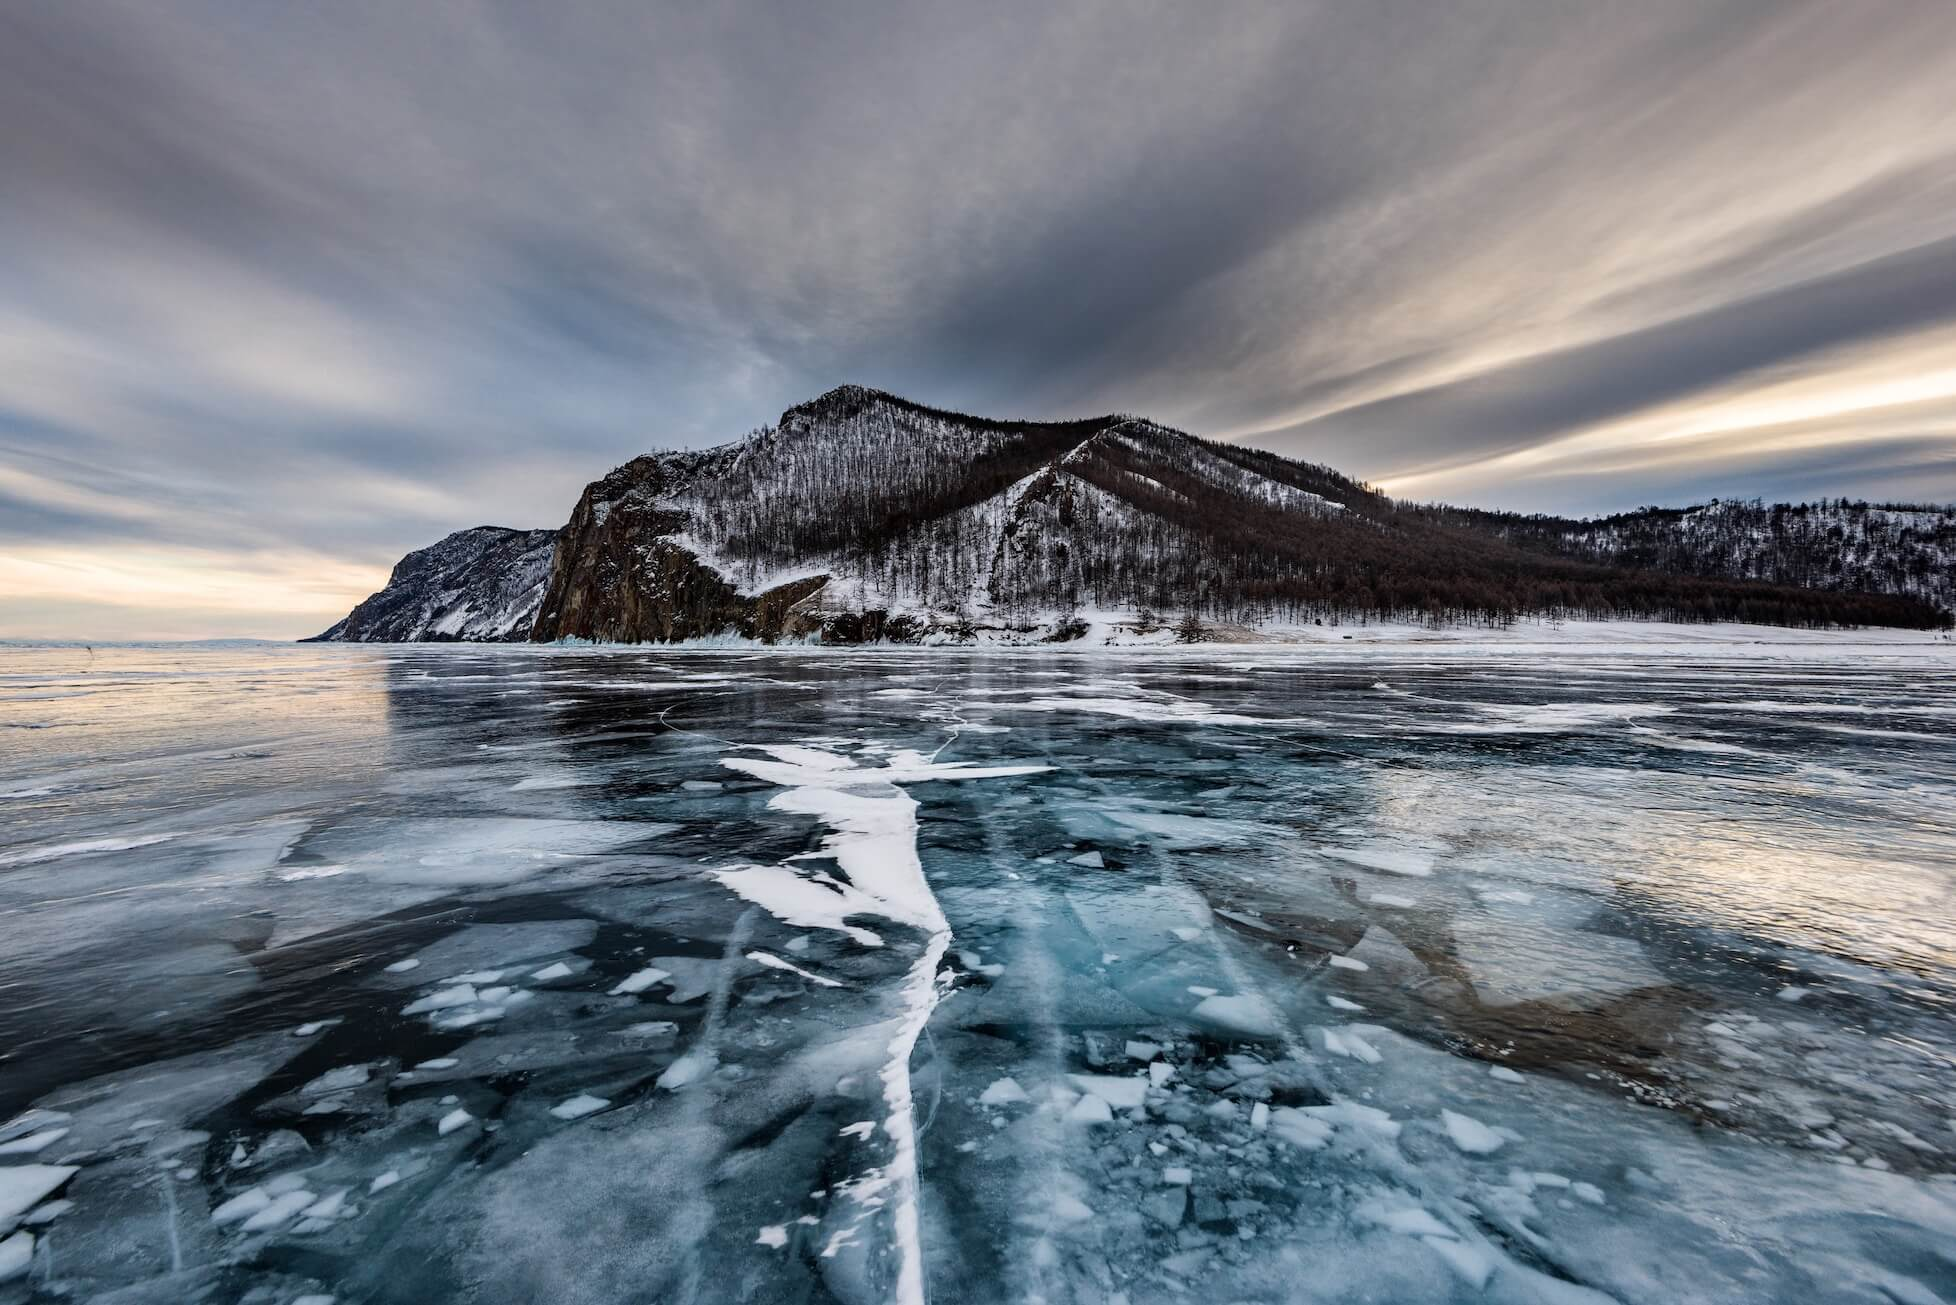 Image of Russian lake by Sergey Pesterev